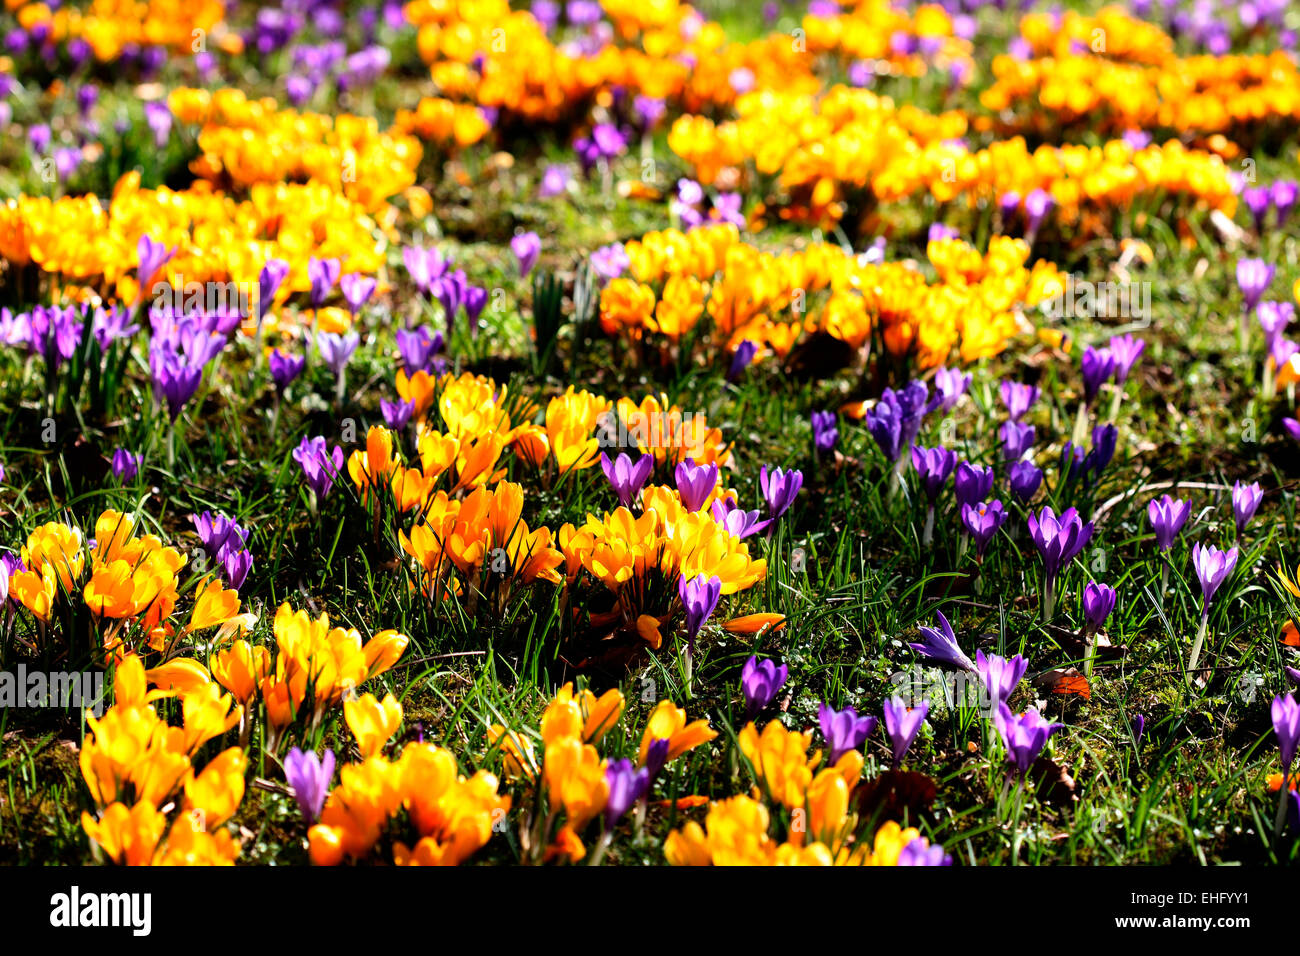 Small purple flowers with yellow centre stock photos small purple yellow and purple crocus field jane ann butler photography jabp690 stock image mightylinksfo